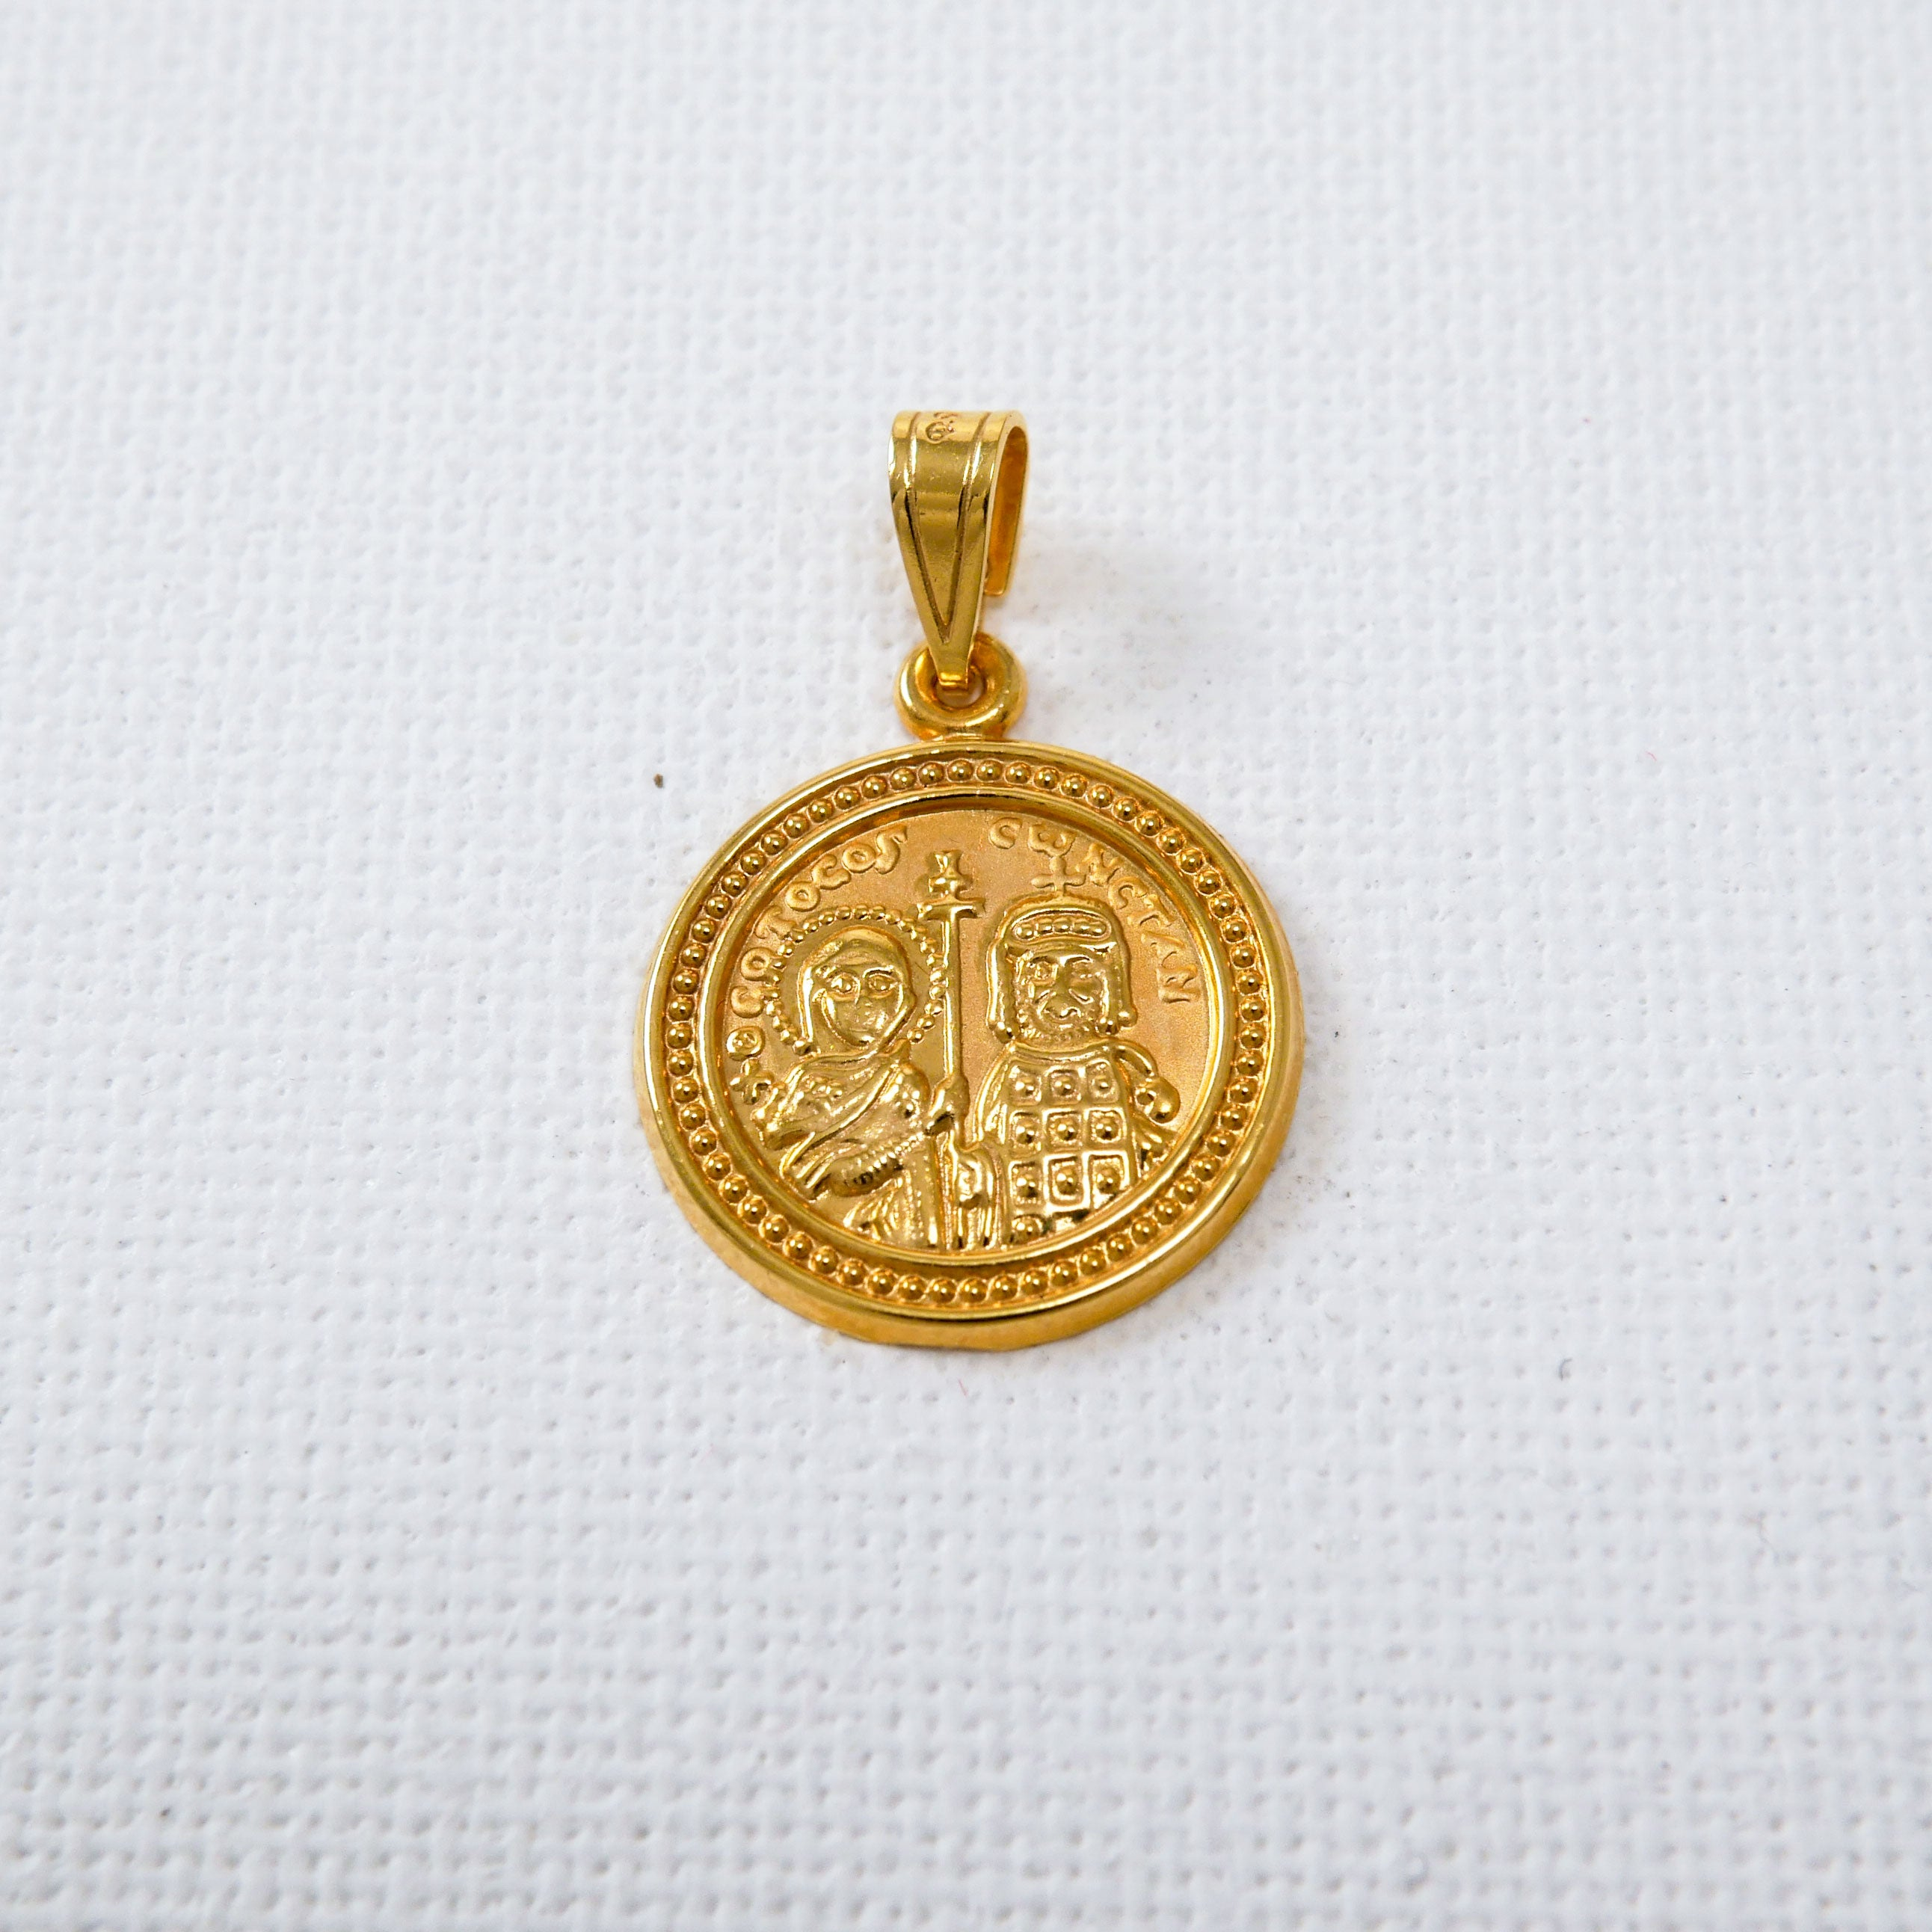 9K Gold Constantine Coin Charm (III)